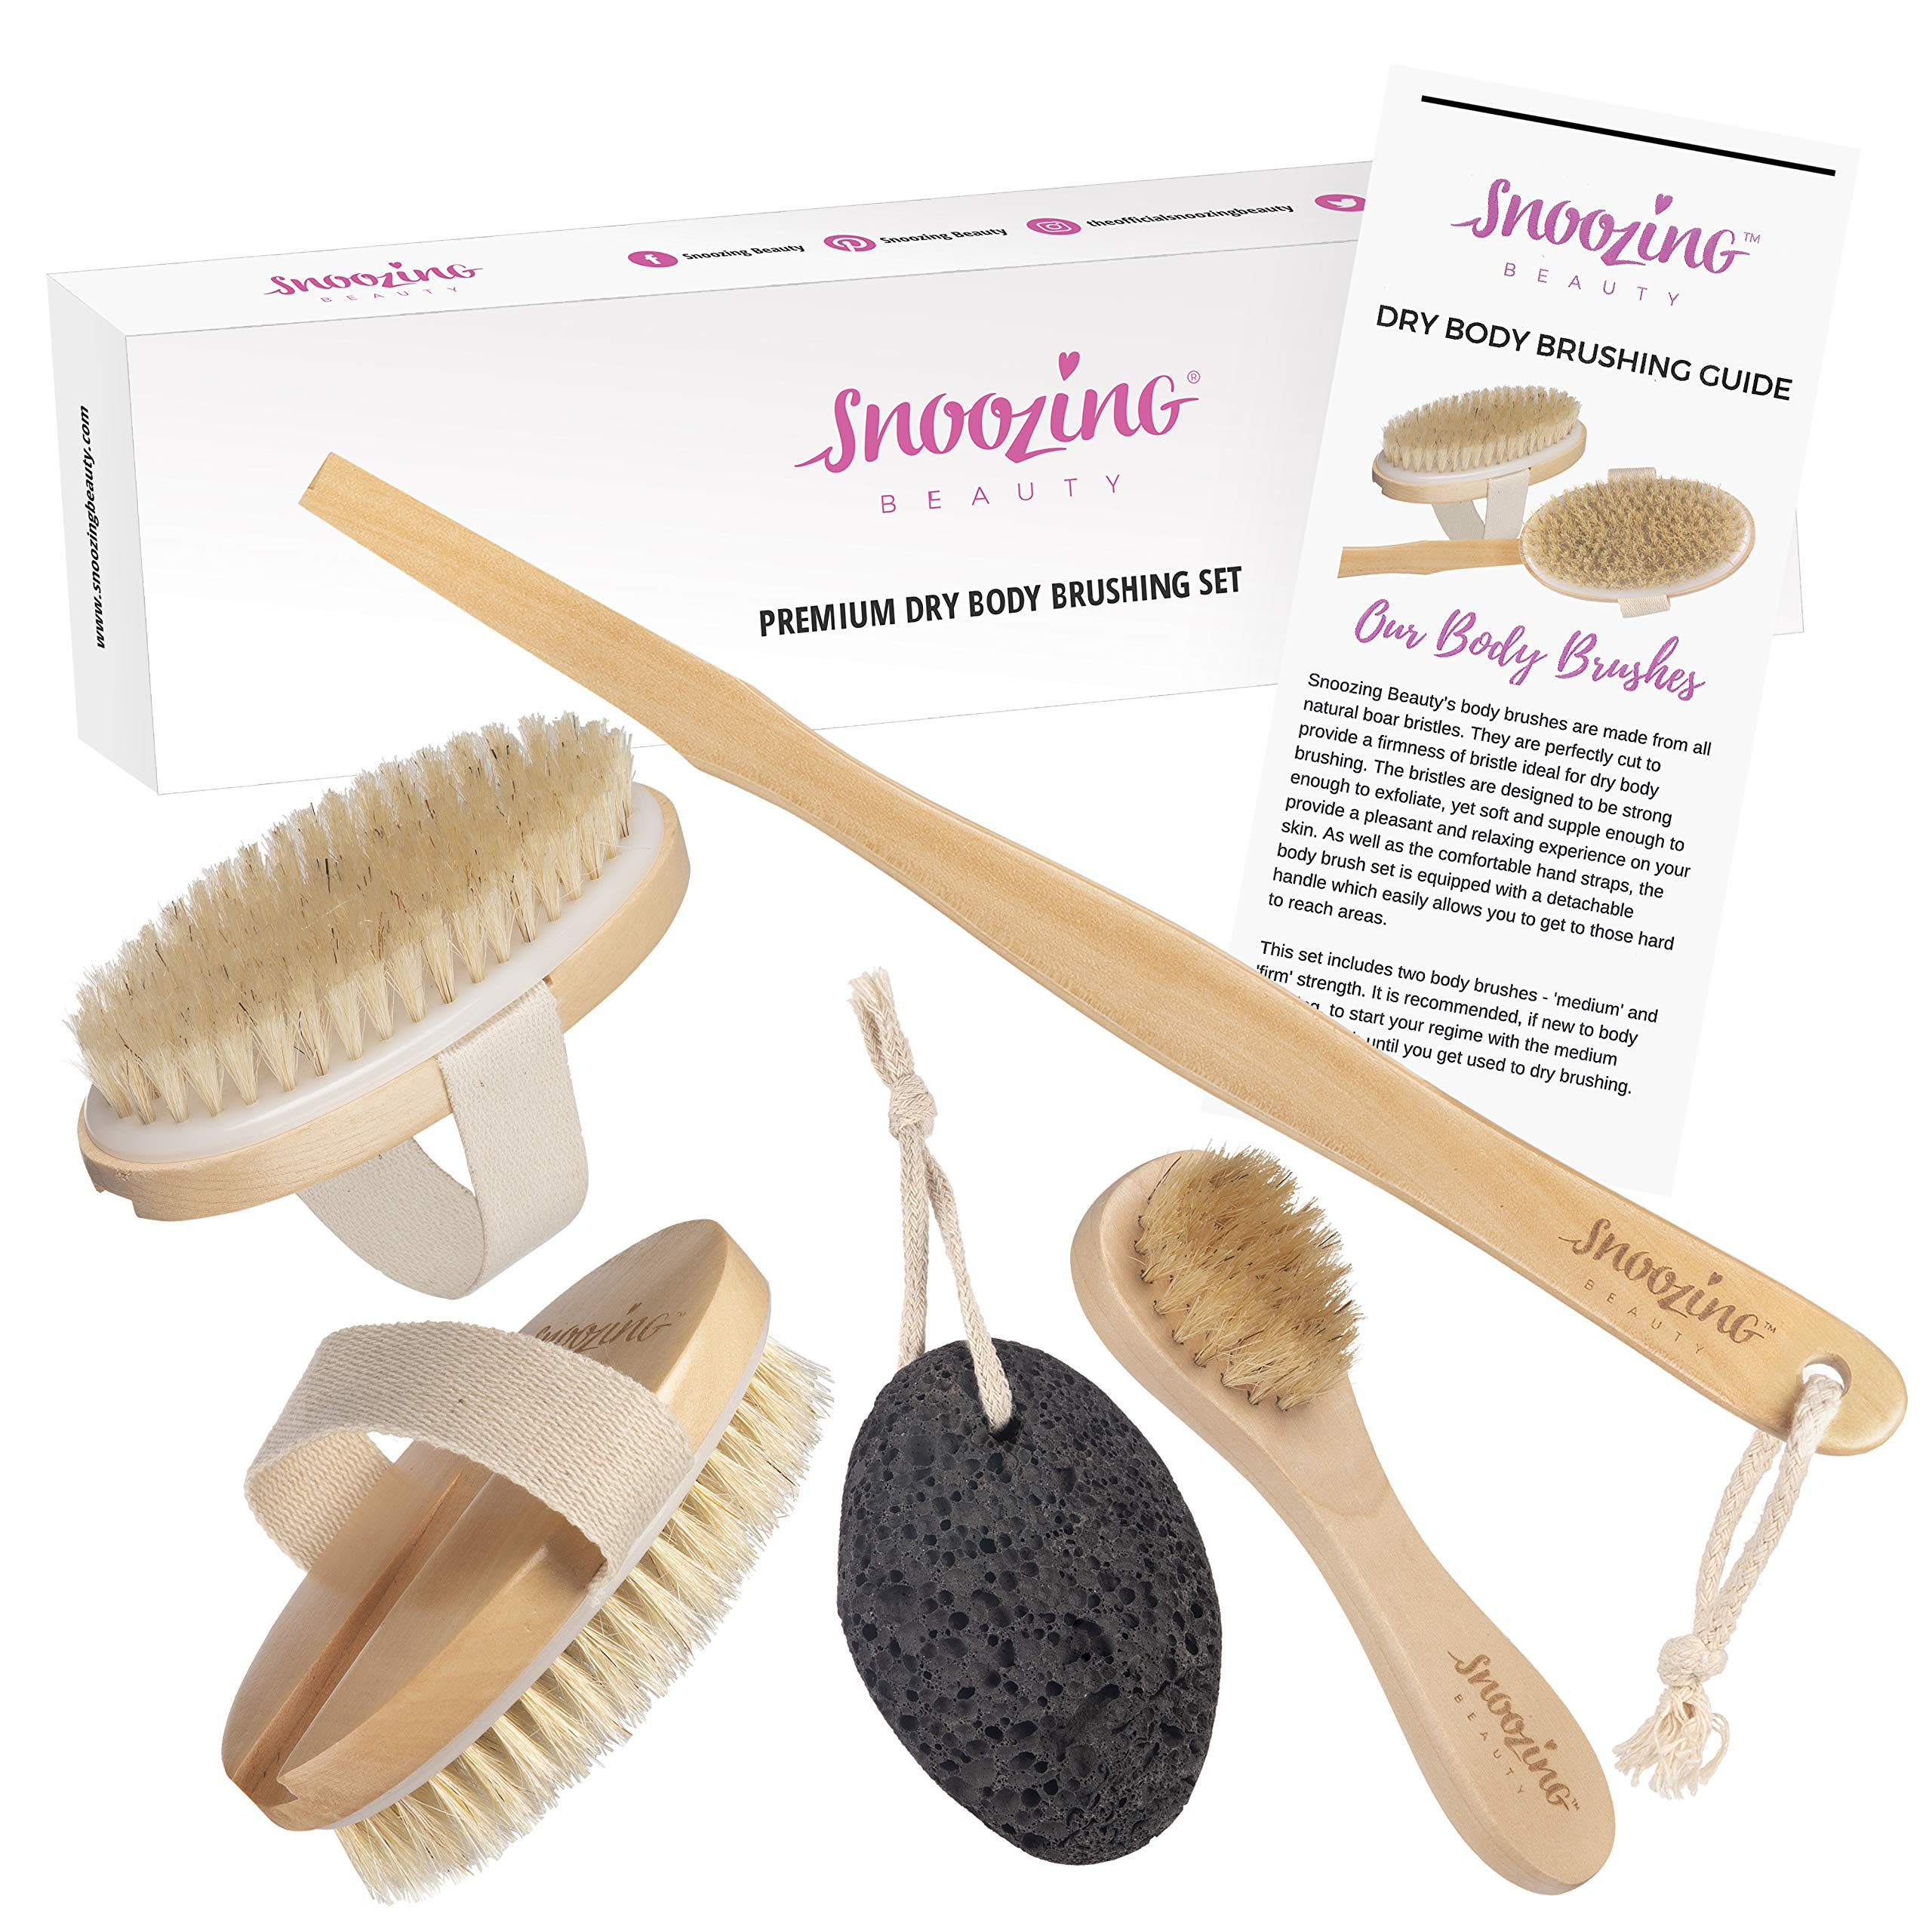 3 x Brush – Dry Body Brushing Set by Snoozing Beauty | SOFT Cleansing Face Brush | MEDIUM and FIRM Body Brushes | Pumice Stone for Dry Skin Foot Care